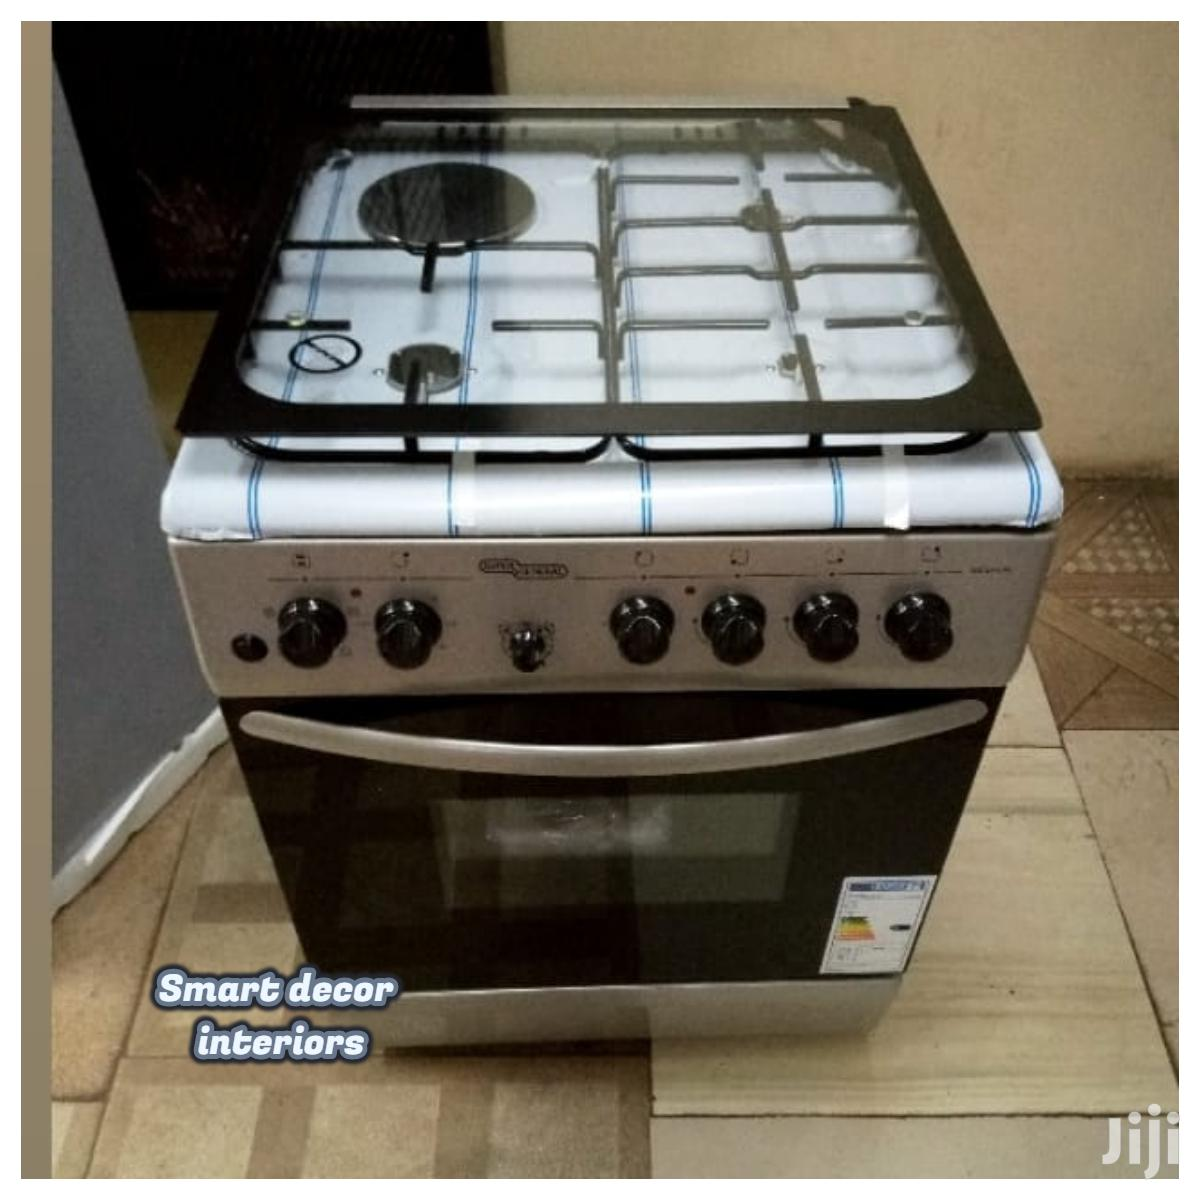 60 By 60 3gas +1 Electric Stand Cooker, Electric Oven